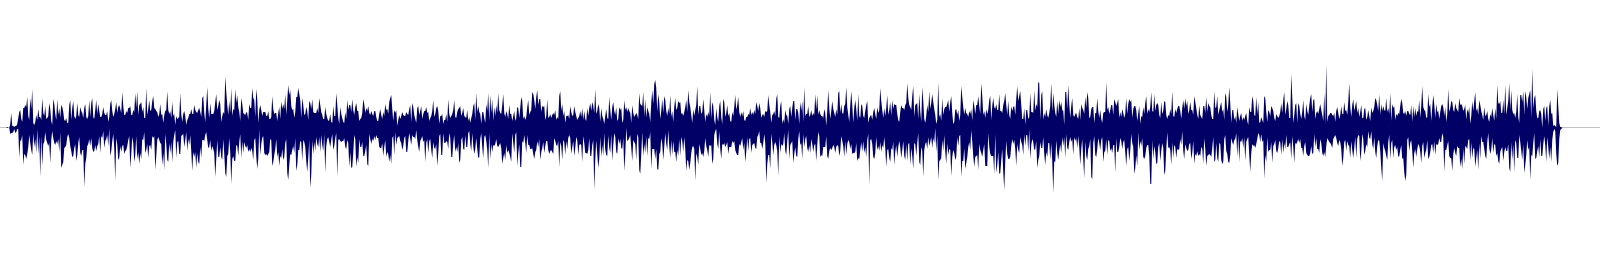 waveform of track #97257